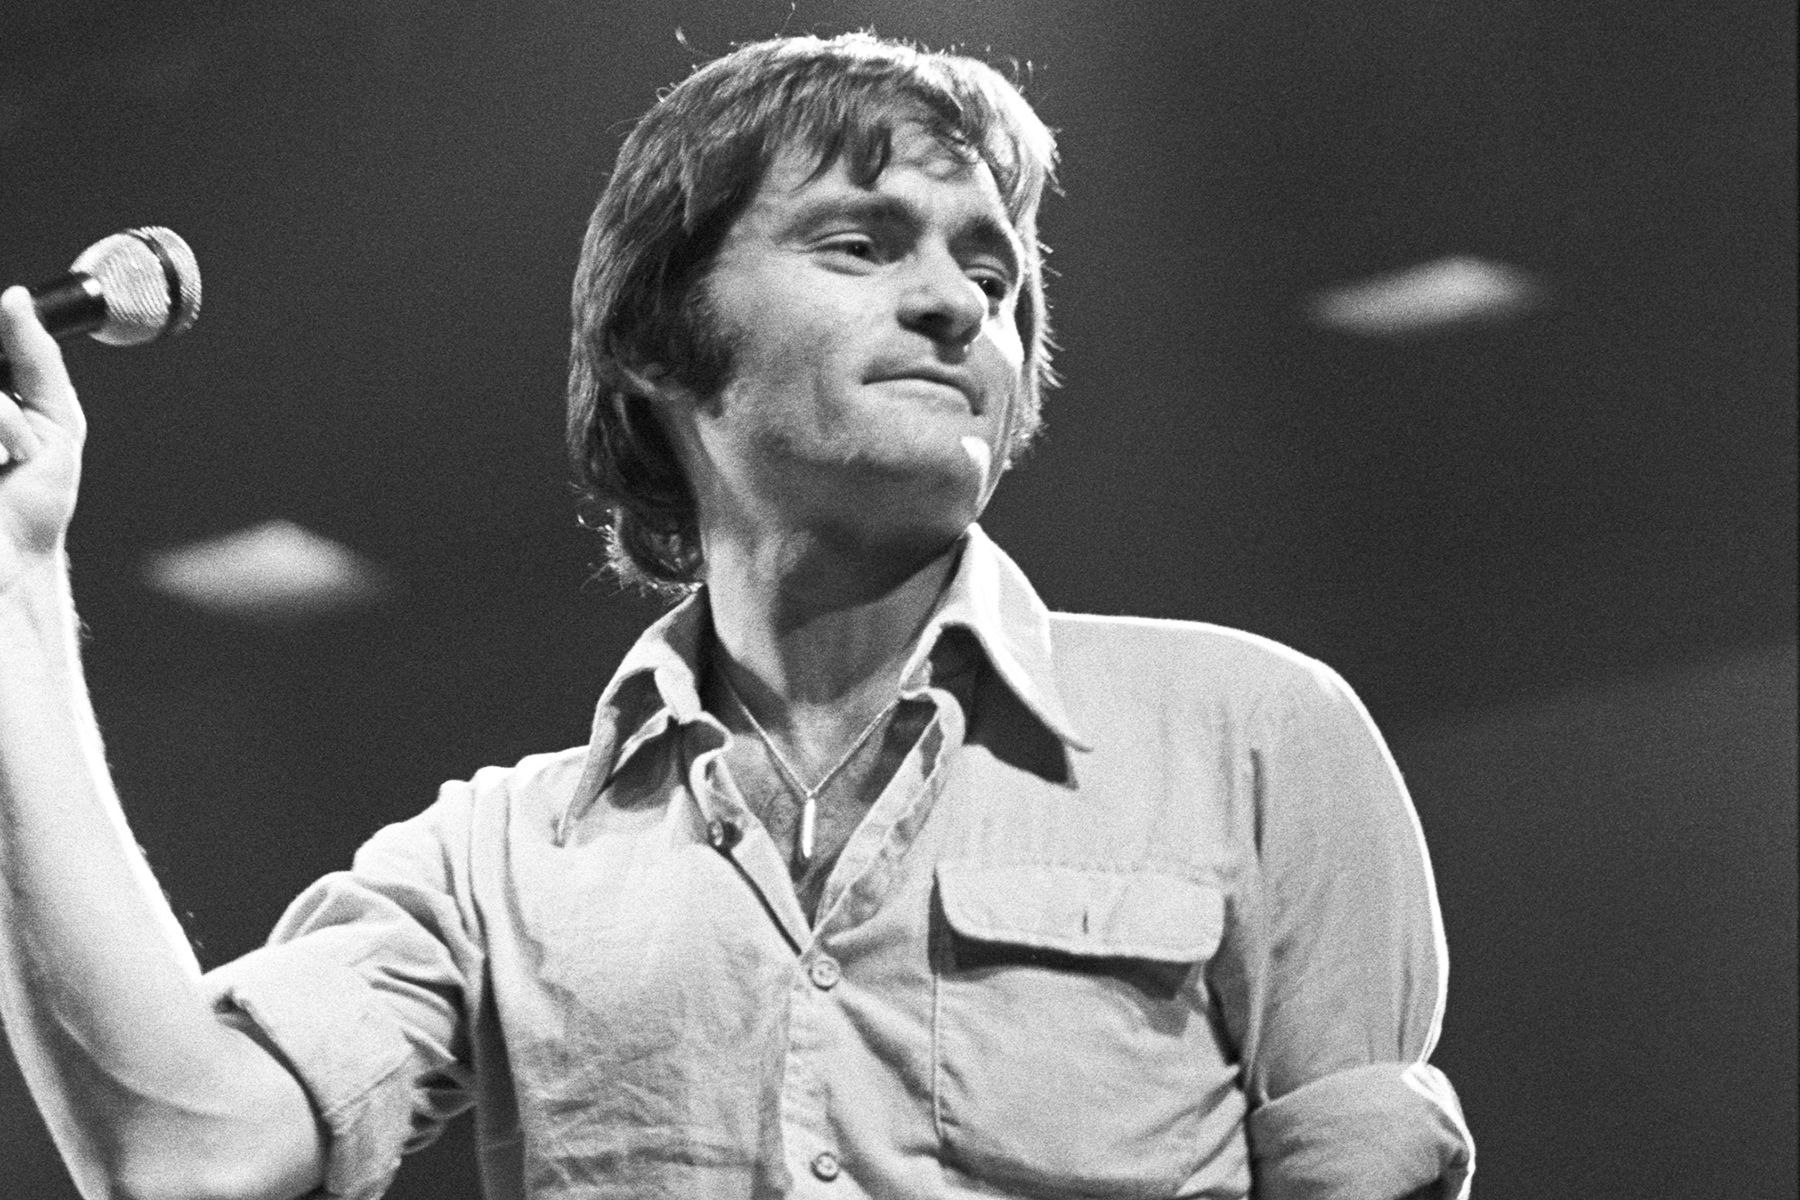 Jefferson Airplane co-founder Balin dead at 76. Marty Balin, co-founder of the 1960s California psychedelic rock group Jefferson Airplane